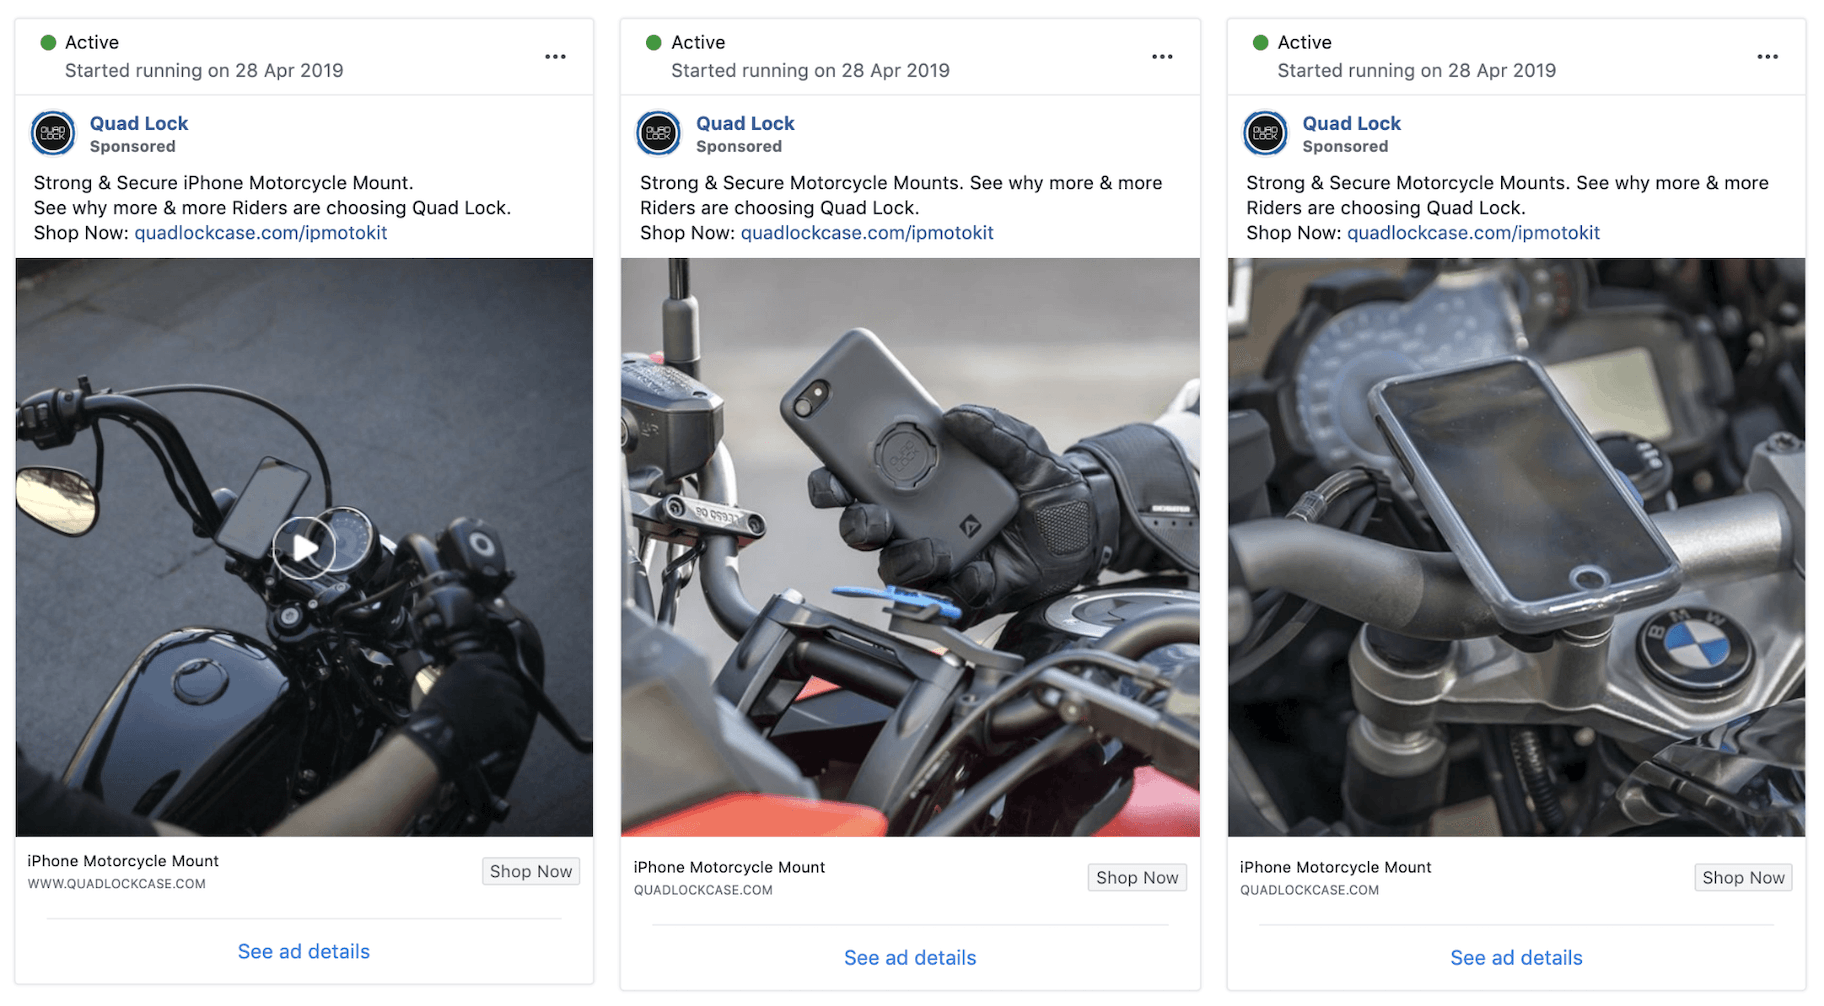 Quad Lock Facebook Ad Split Test